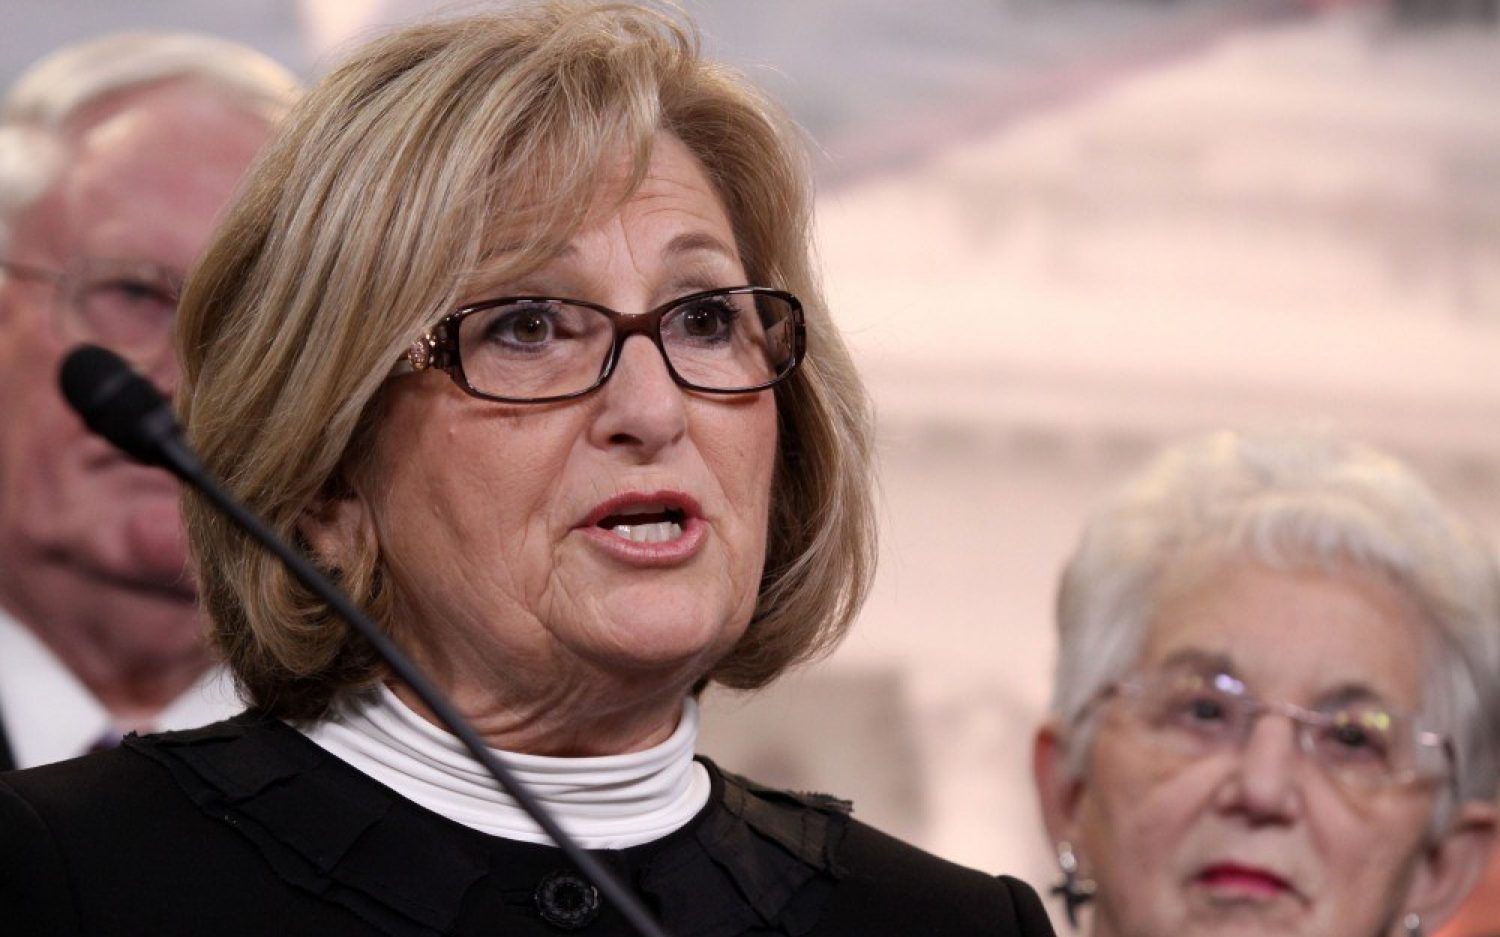 Lawmakers fight to close abortion insurance coverage loophole